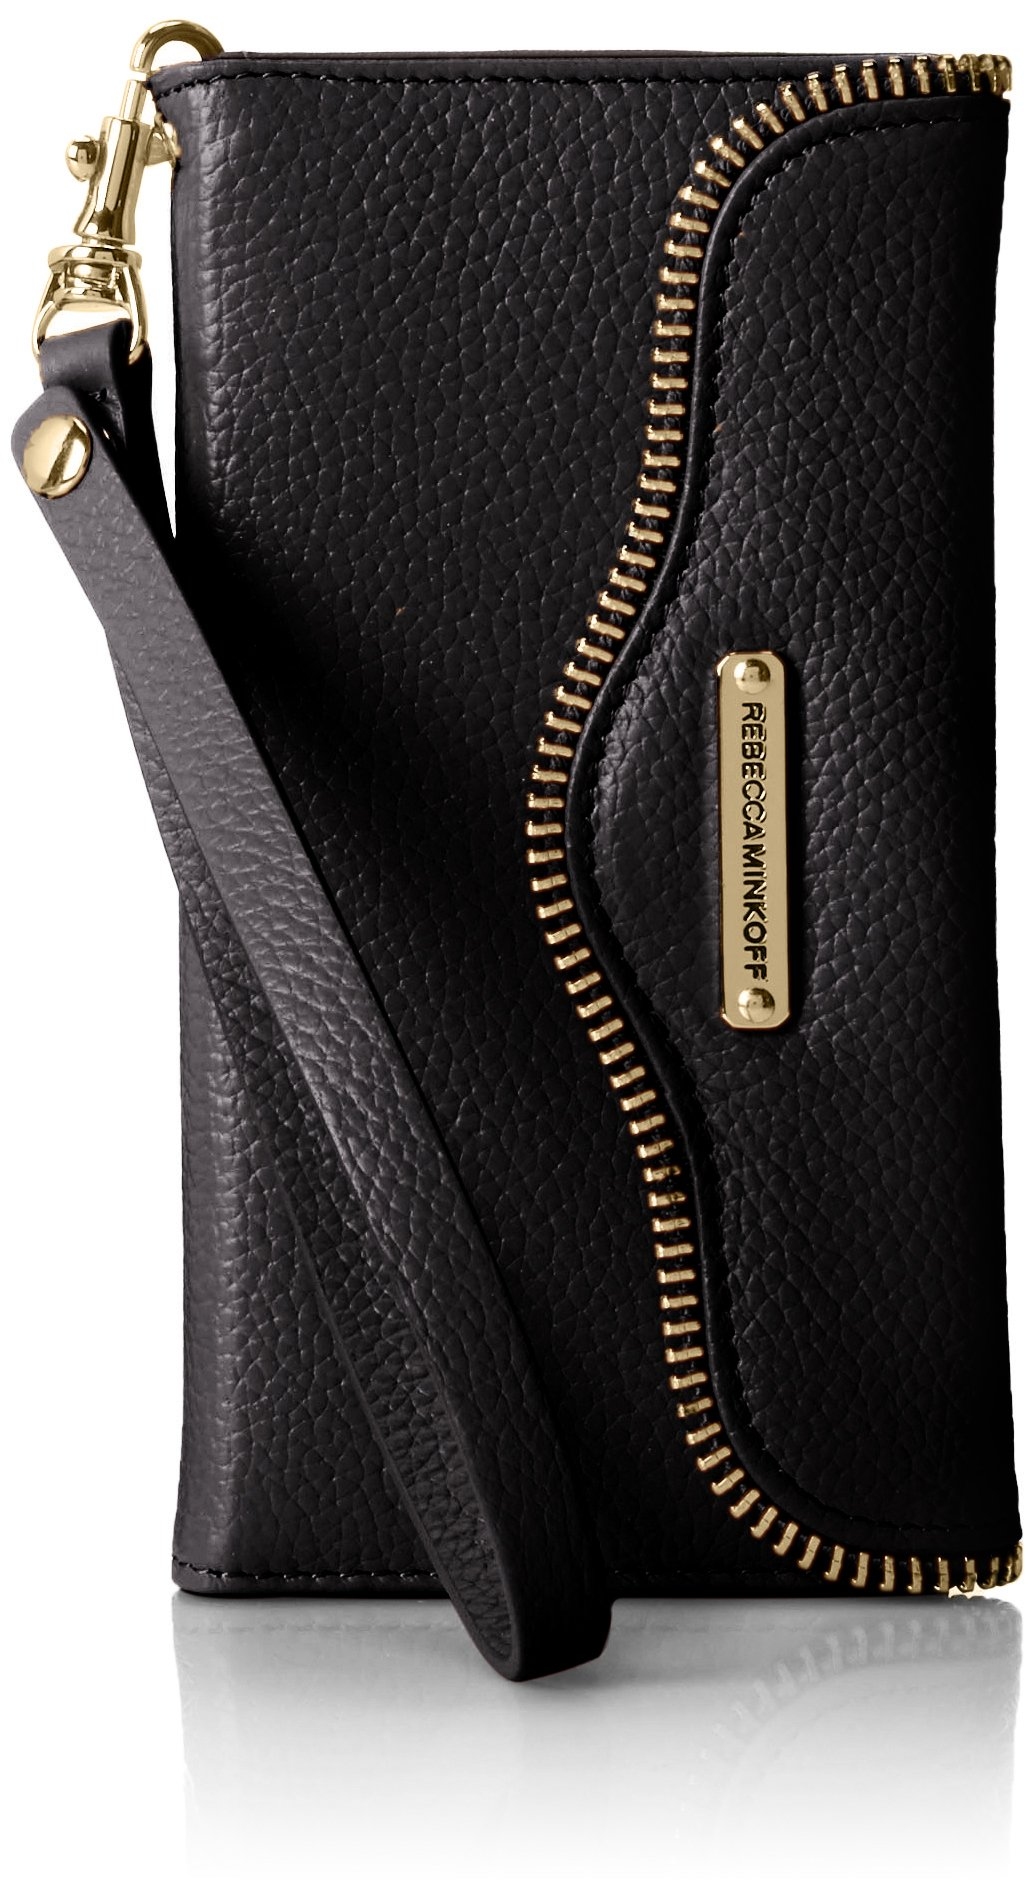 Rebecca Minkoff Iphone 6 Leather Folio Cell Phone Case, Black, One Size